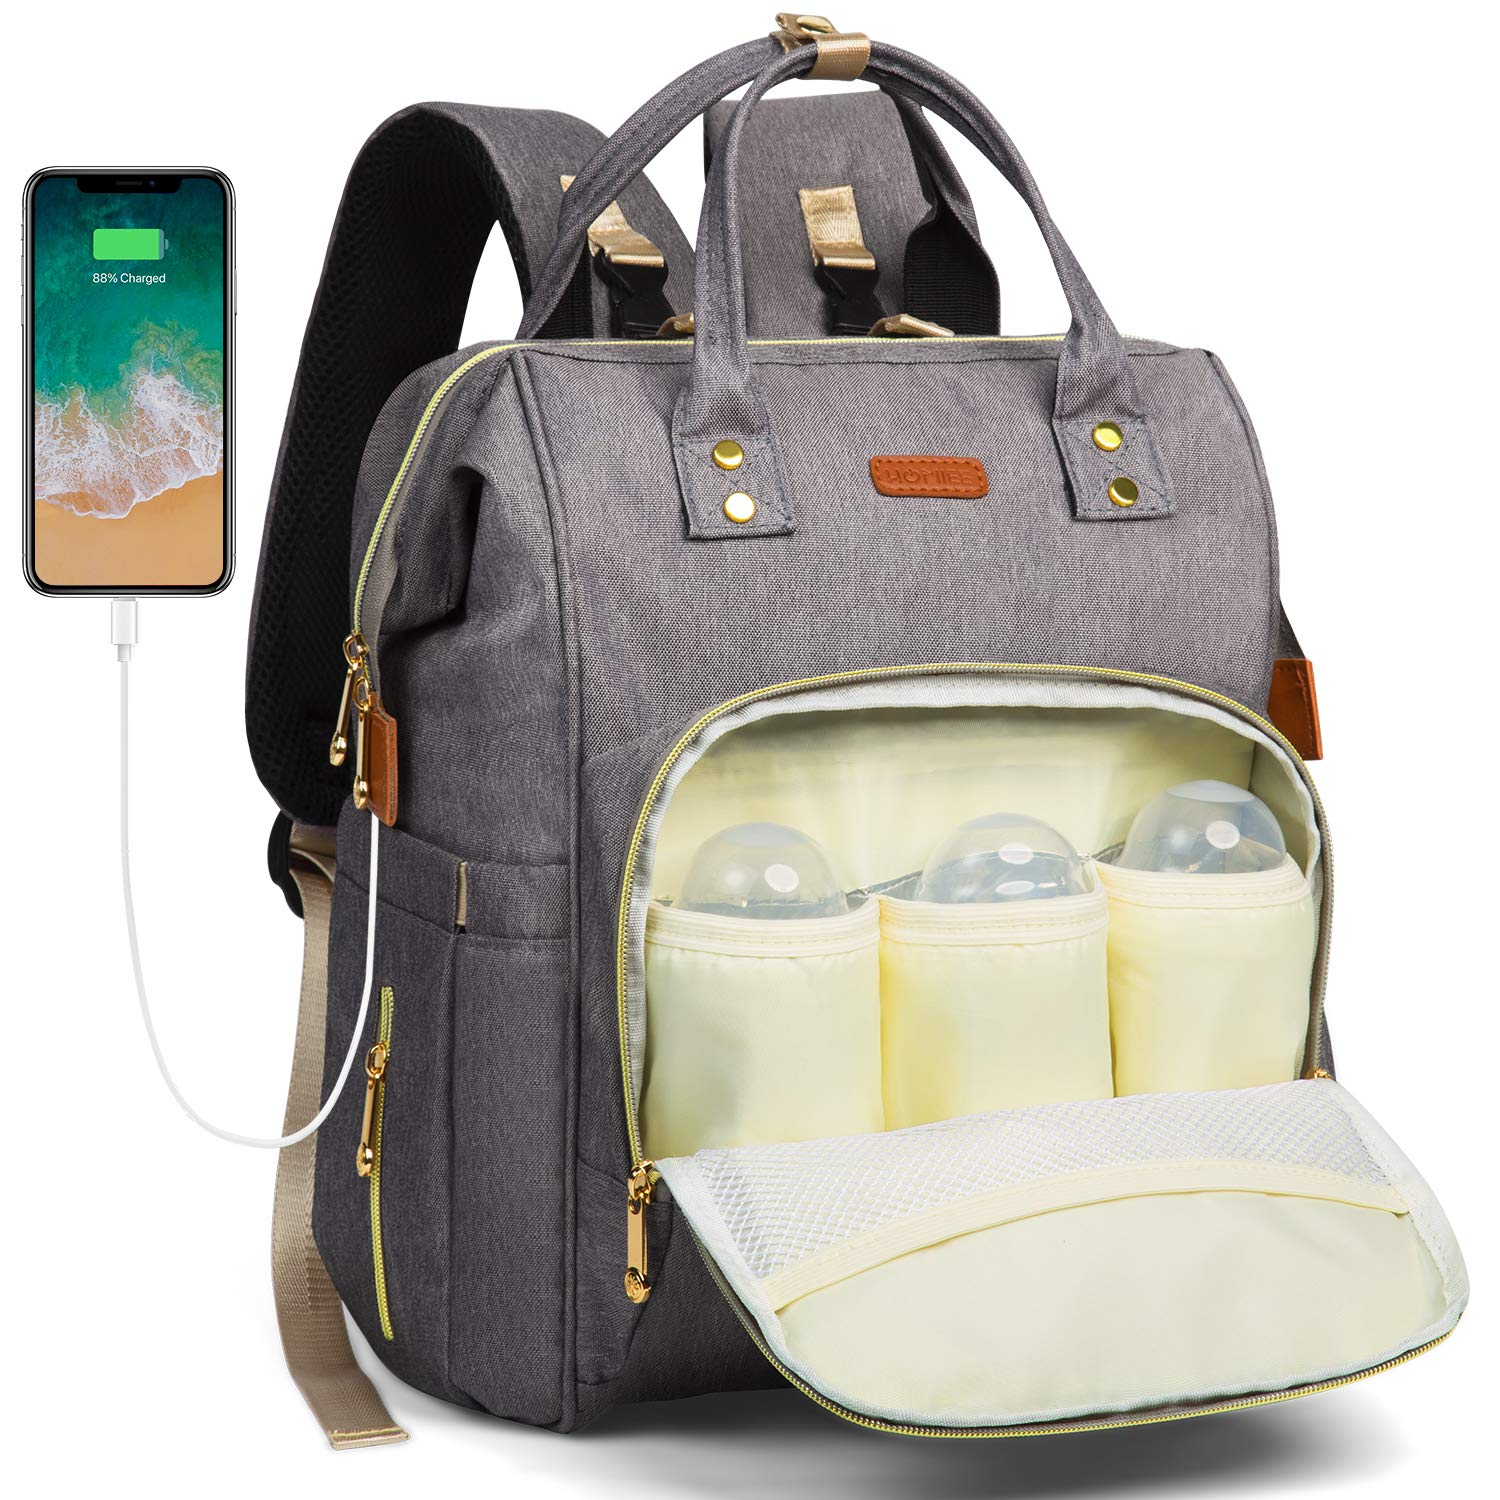 Diaper Backpack Bag, HOMIEE Nappy Changing Backpack Large Capacity Multi-Function Waterproof Mummy Daddy Tote Bag with 3 Bottle Insulated Pocket & USB Charging Port for Baby Care, Gray DB1001G